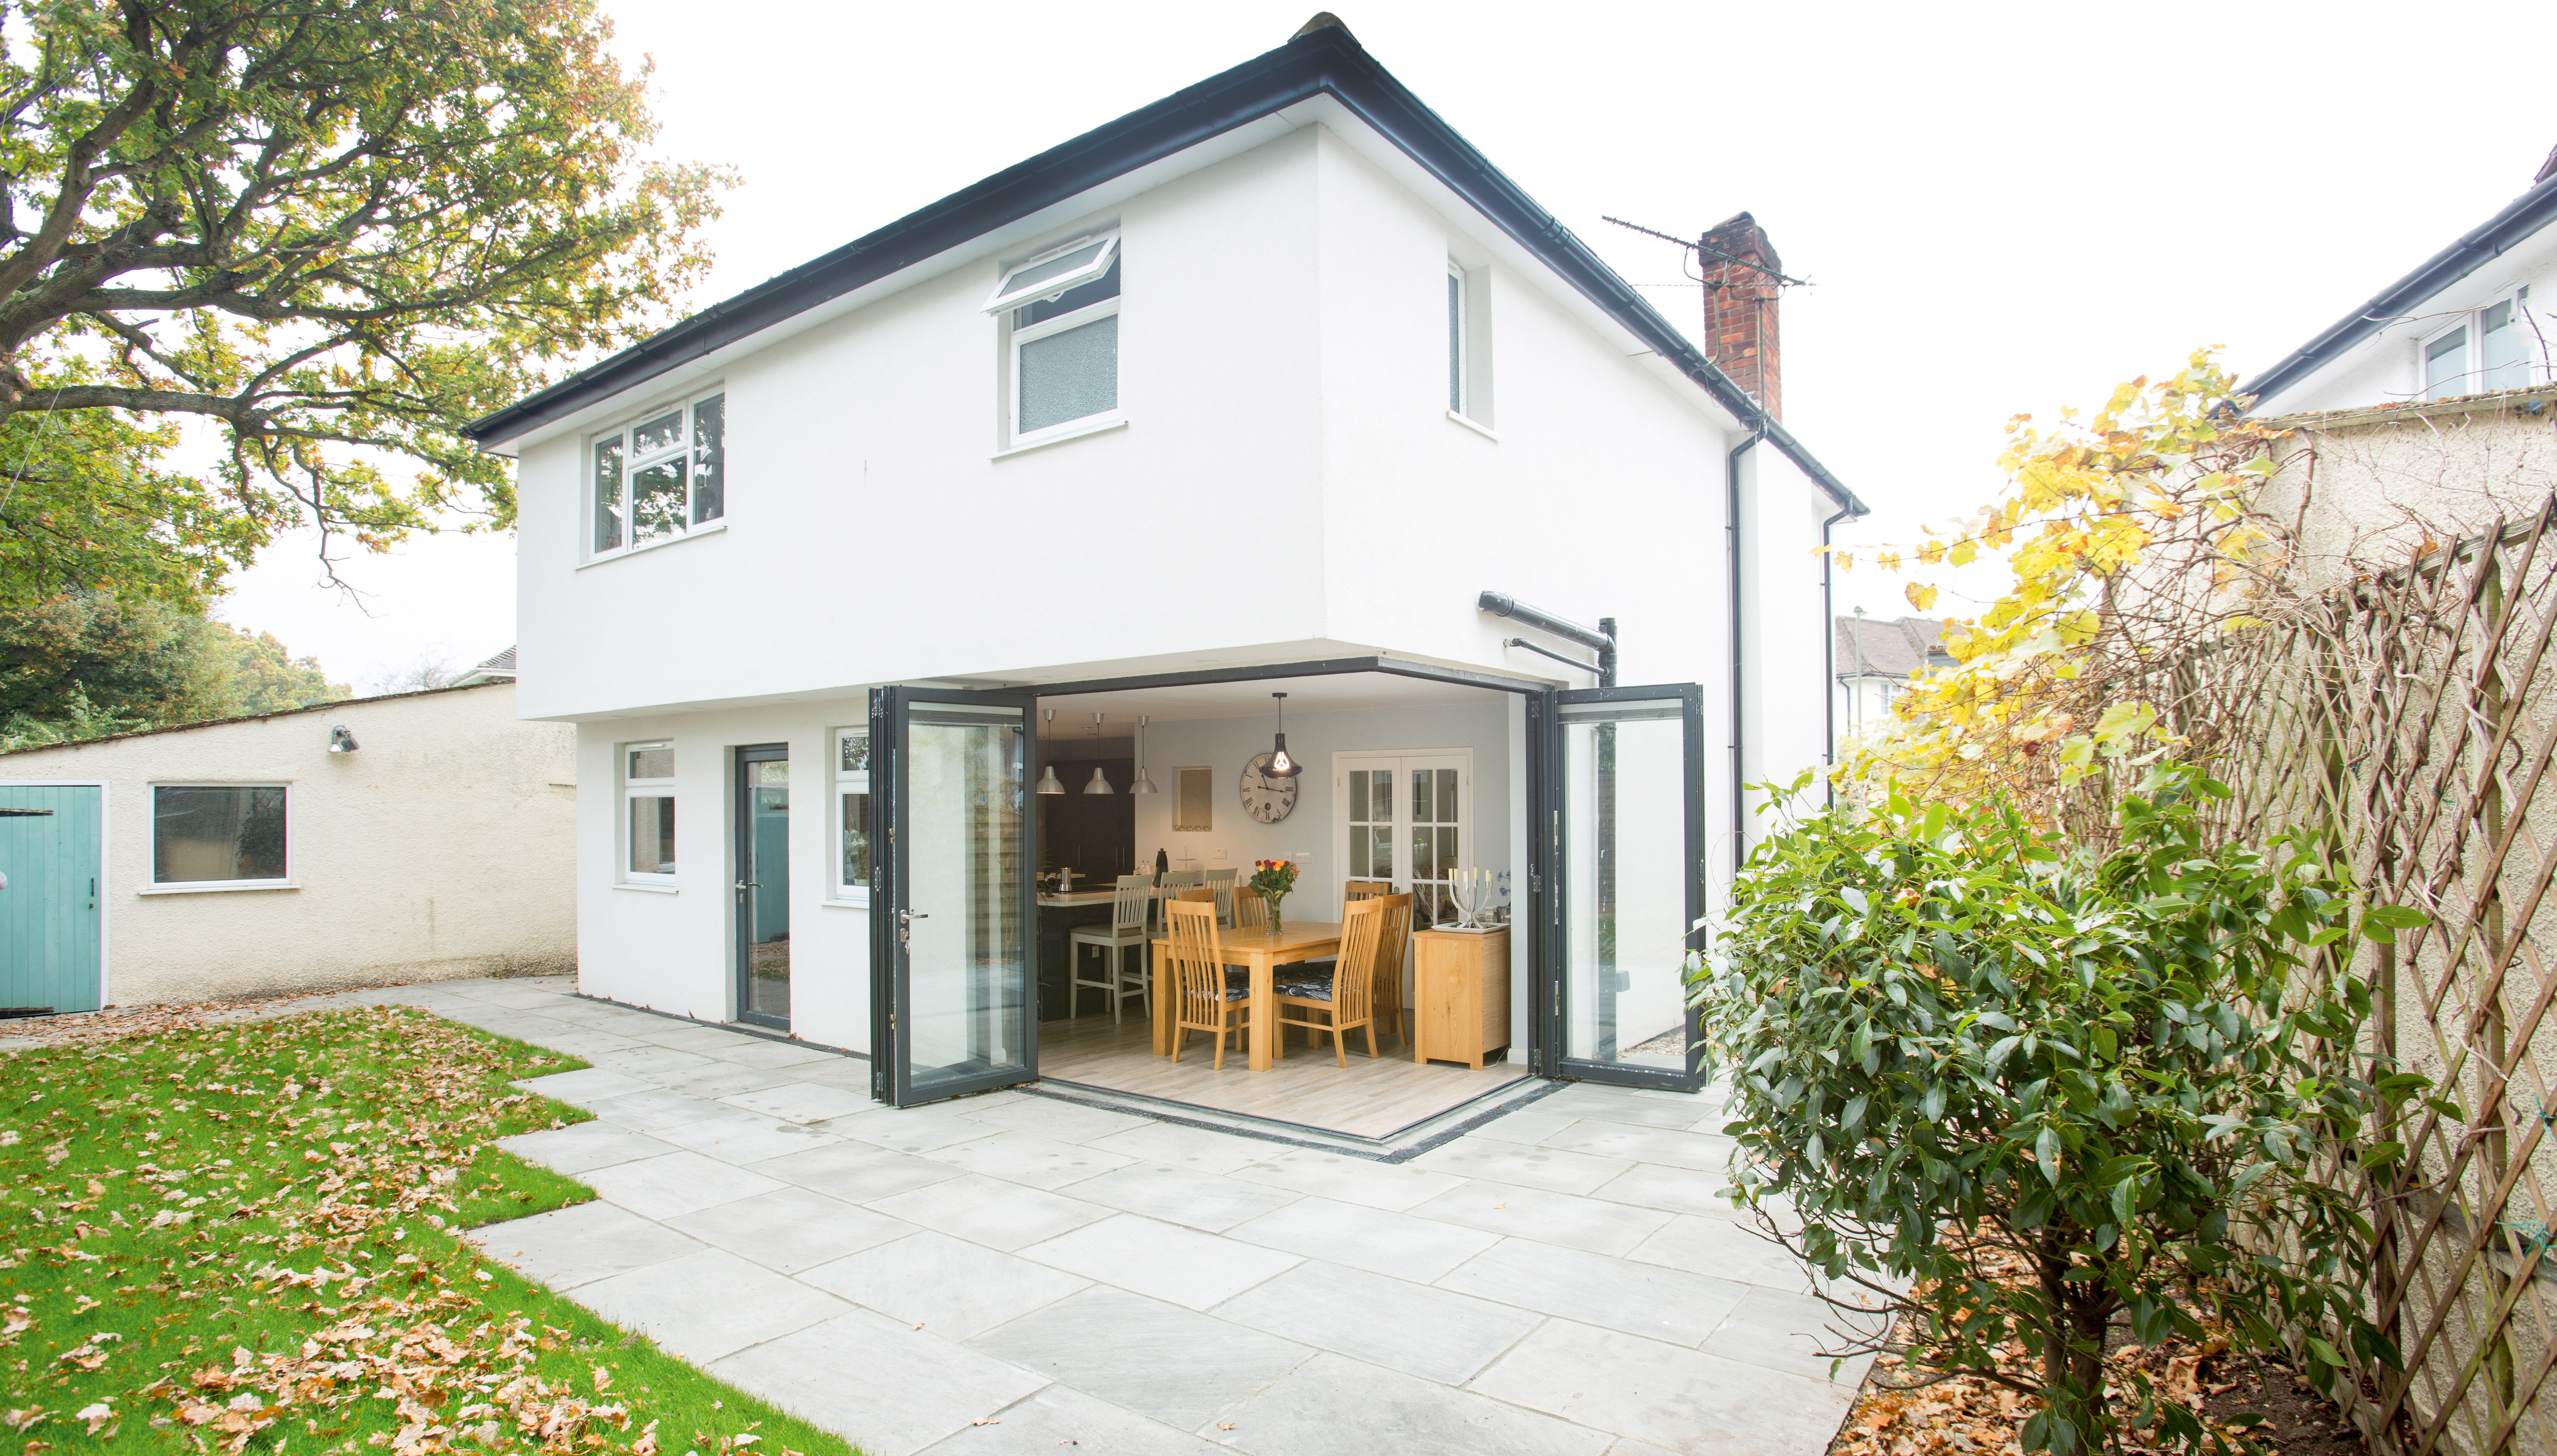 Double Storey Extensions An Expert Guide To Costing Planning And